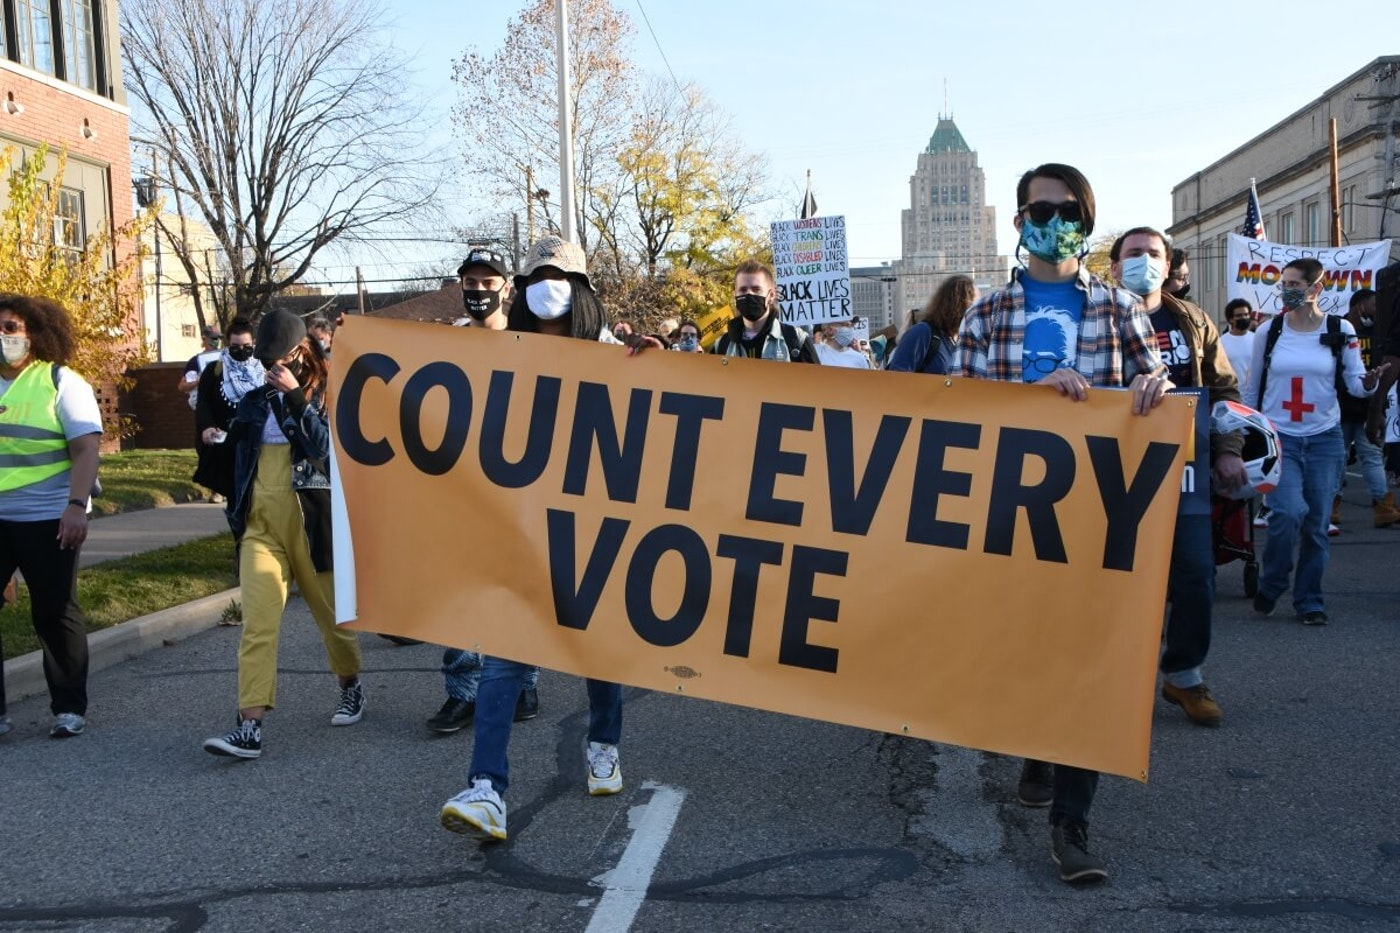 Demonstrators gathered near the Department of Election office as votes in the presidential election continued to be counted.